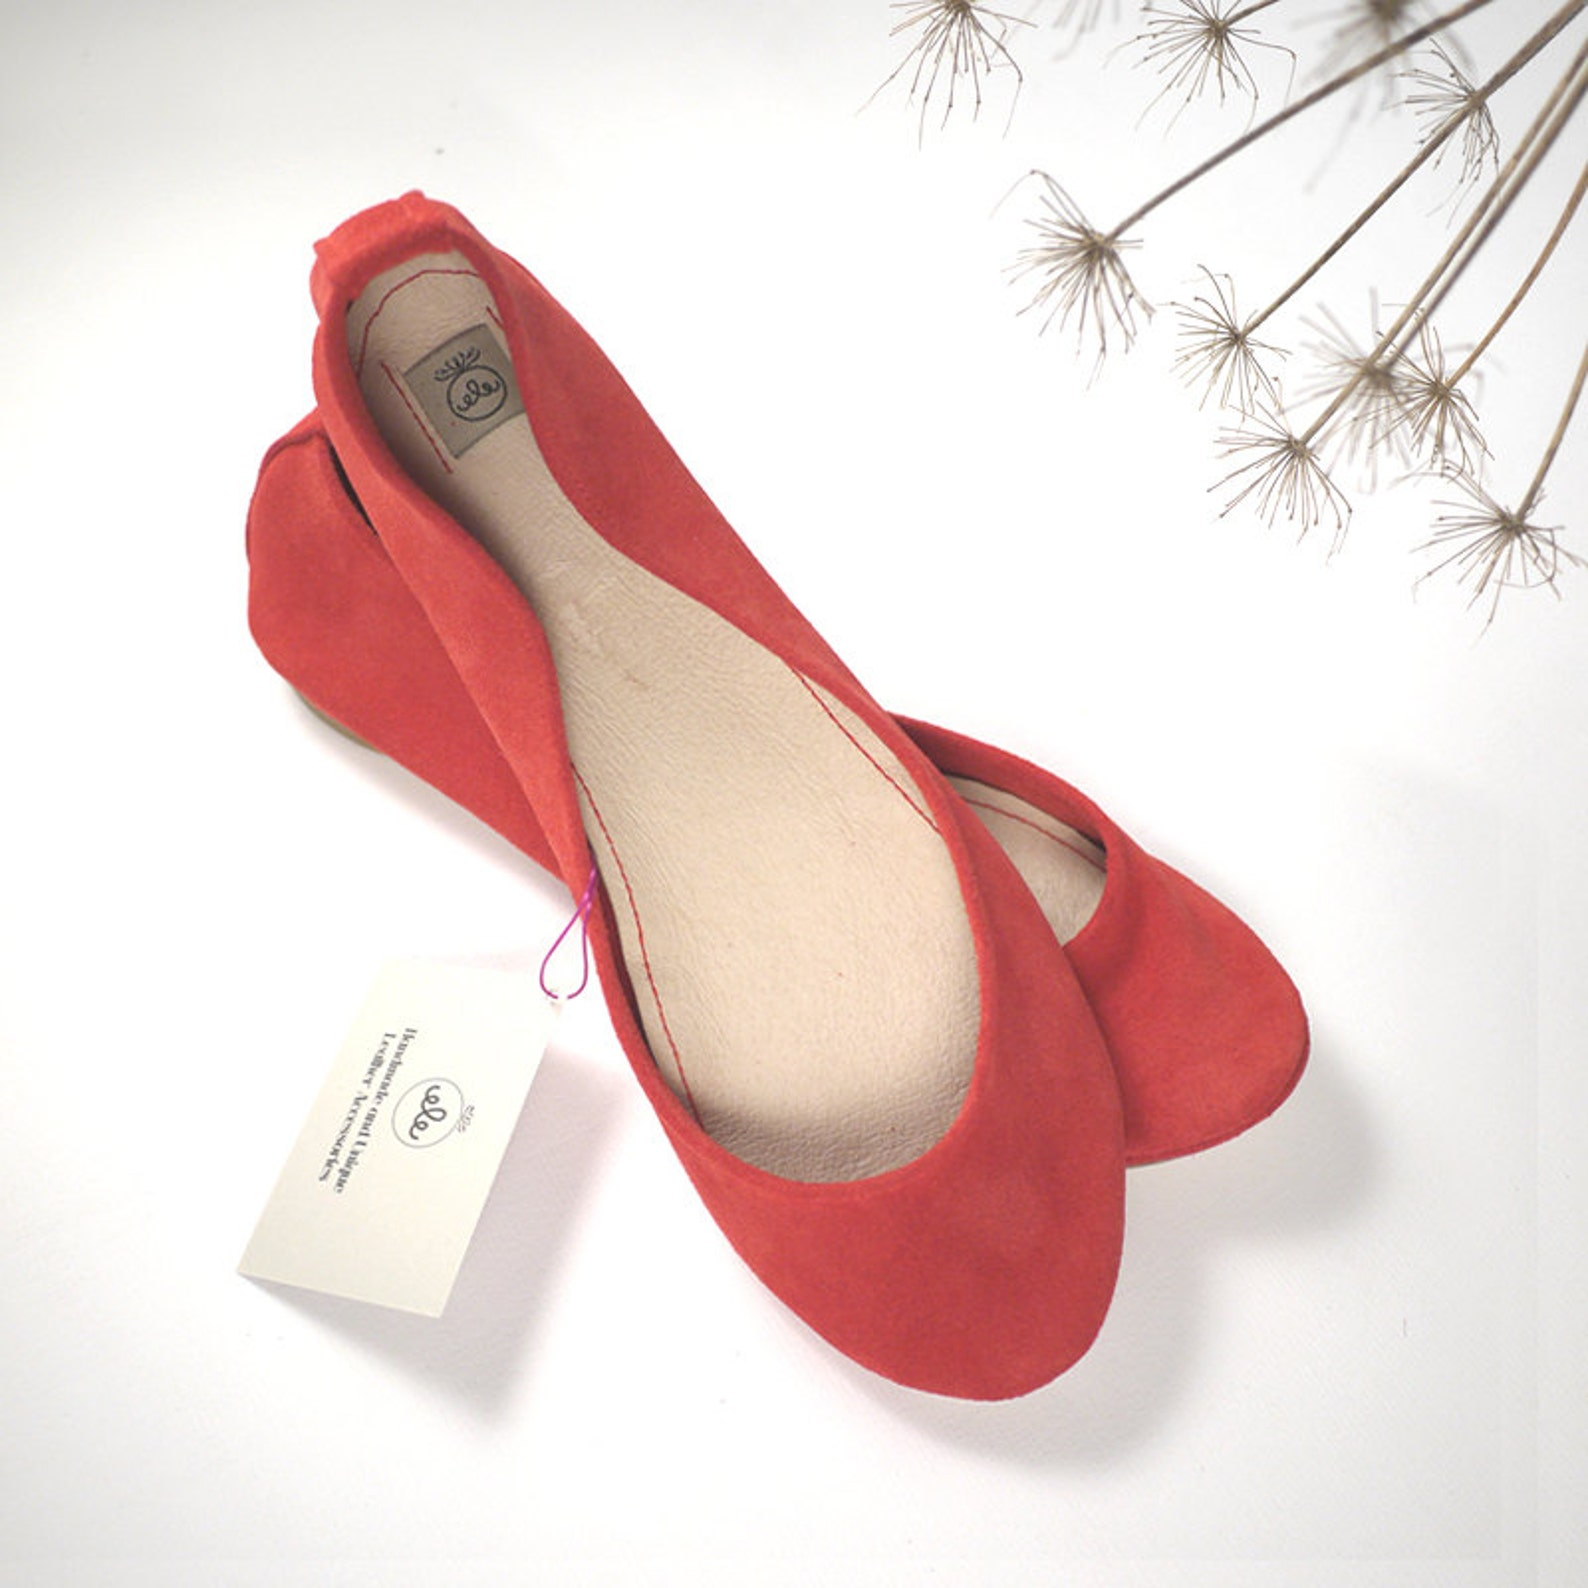 red ballet shoes. flats shoes. bridal shoes. wedding shoes. red handmade flats. pointe style shoes. red flats shoes. italian lea